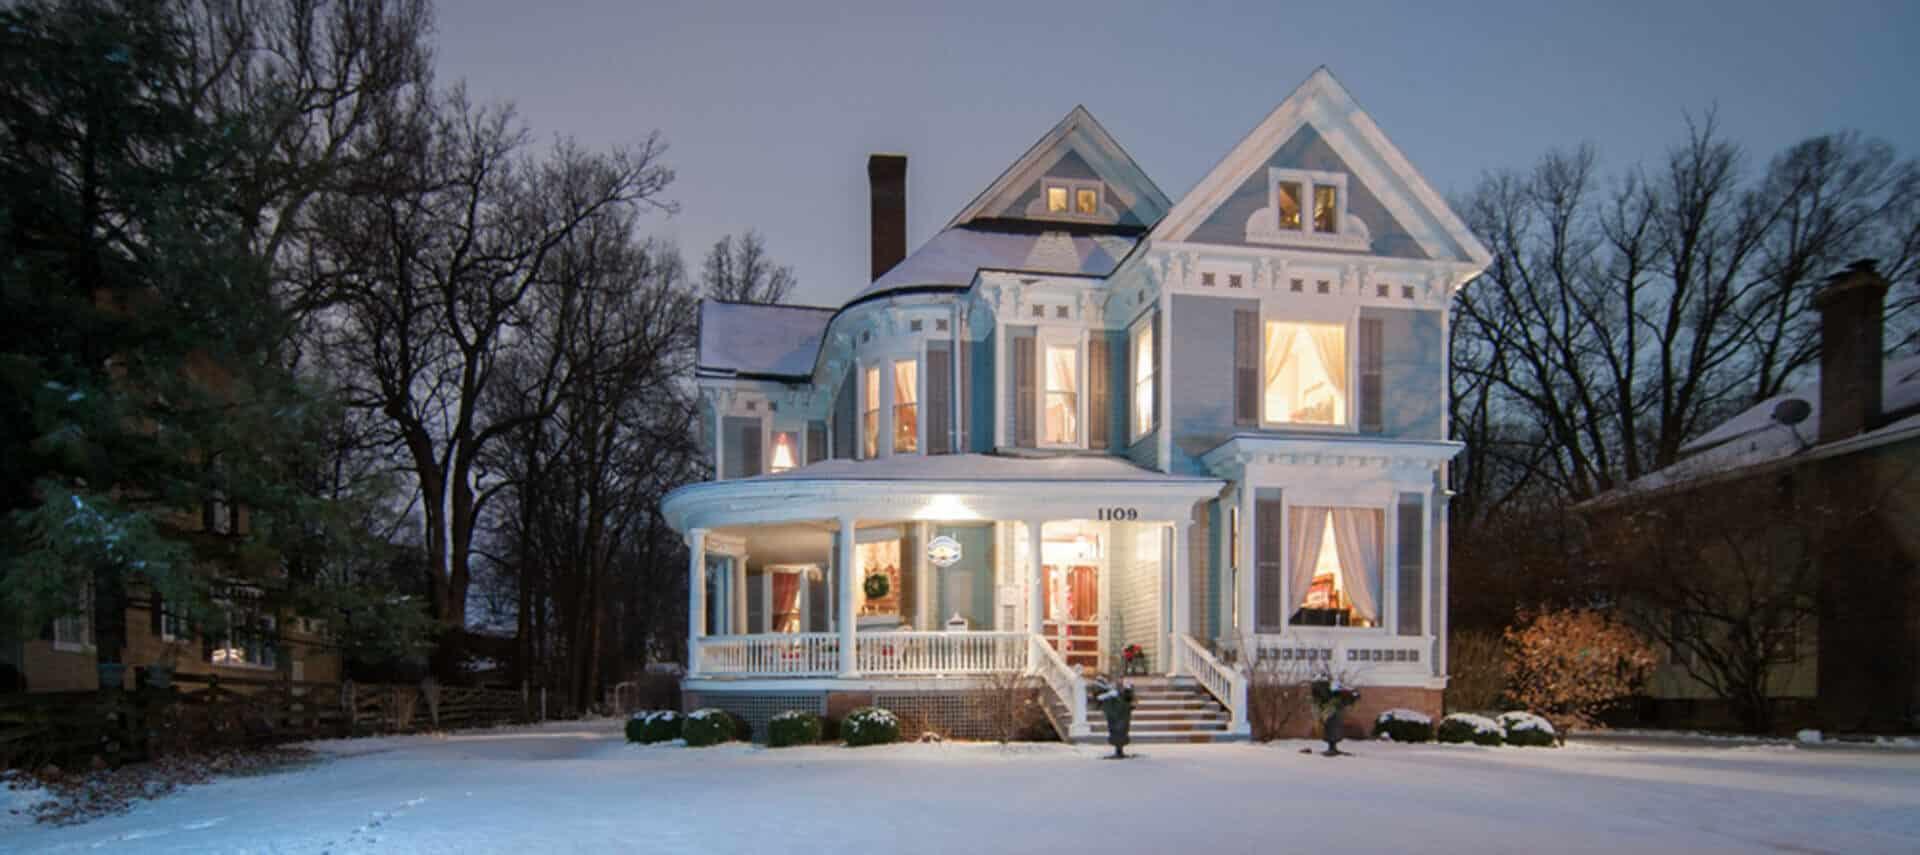 lights illuminate a vintage blue mansion